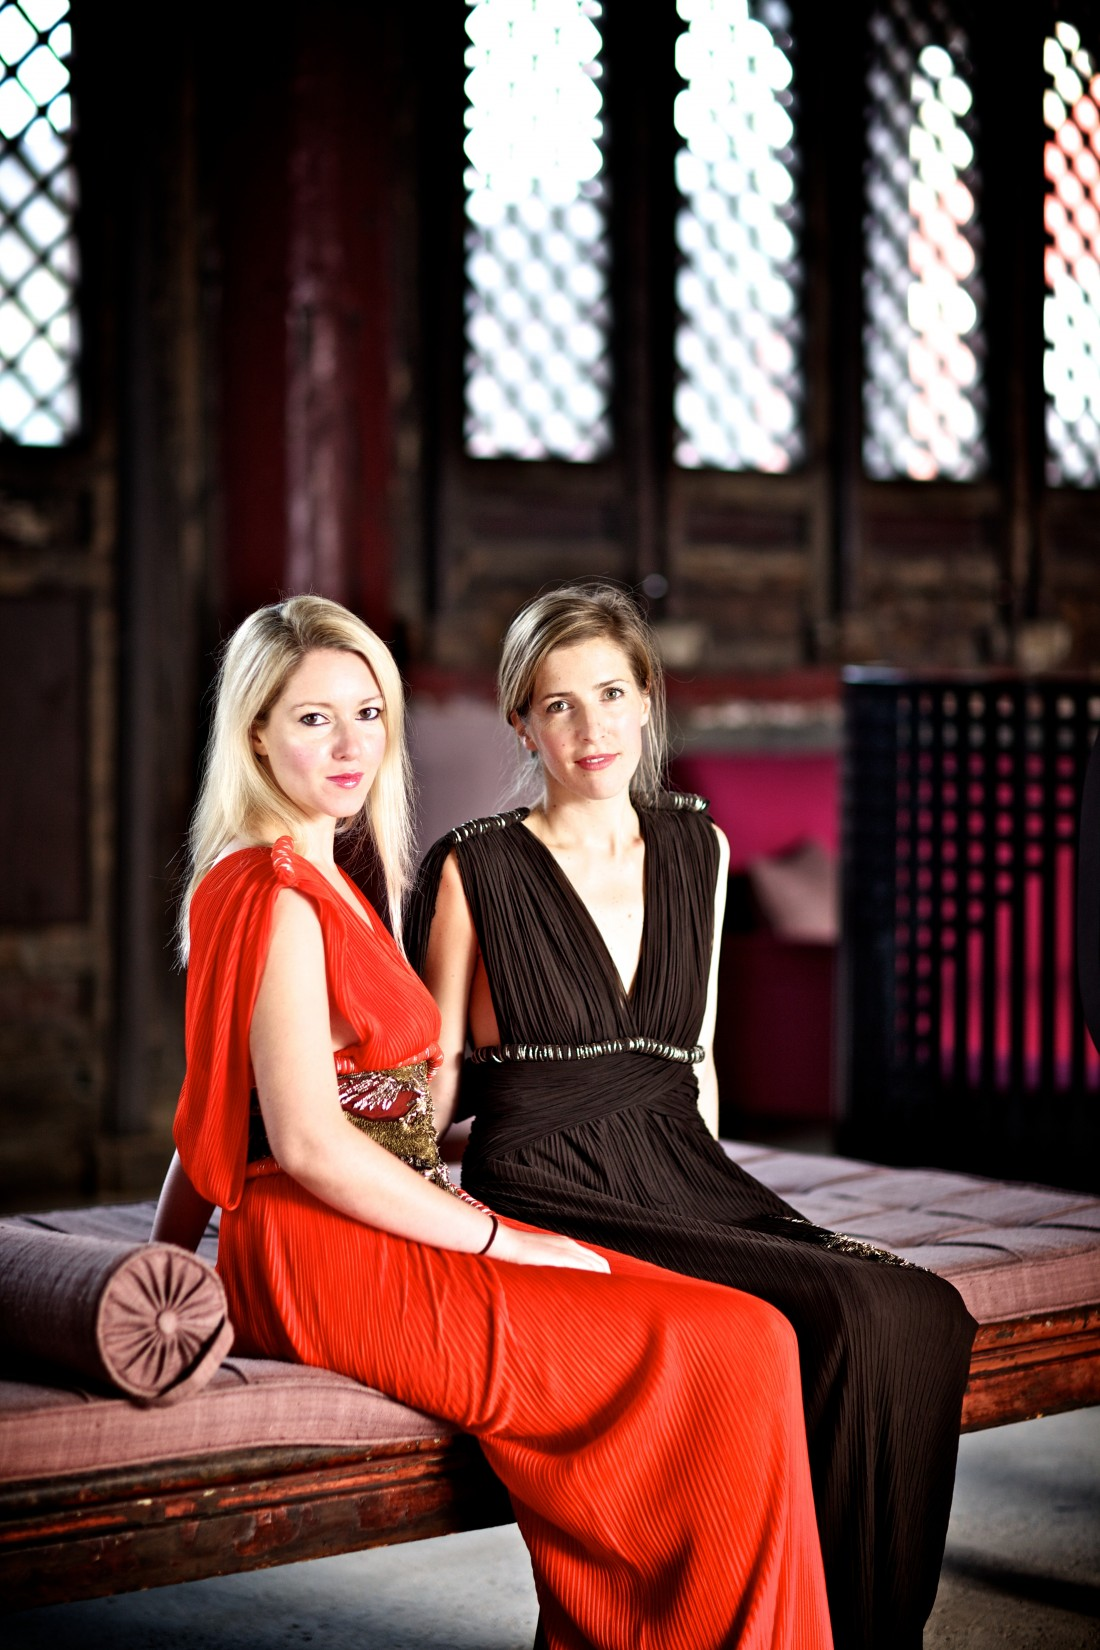 The violin duo, Retorica, perform at Lancaster University's Great Hall on 6 March 2014.